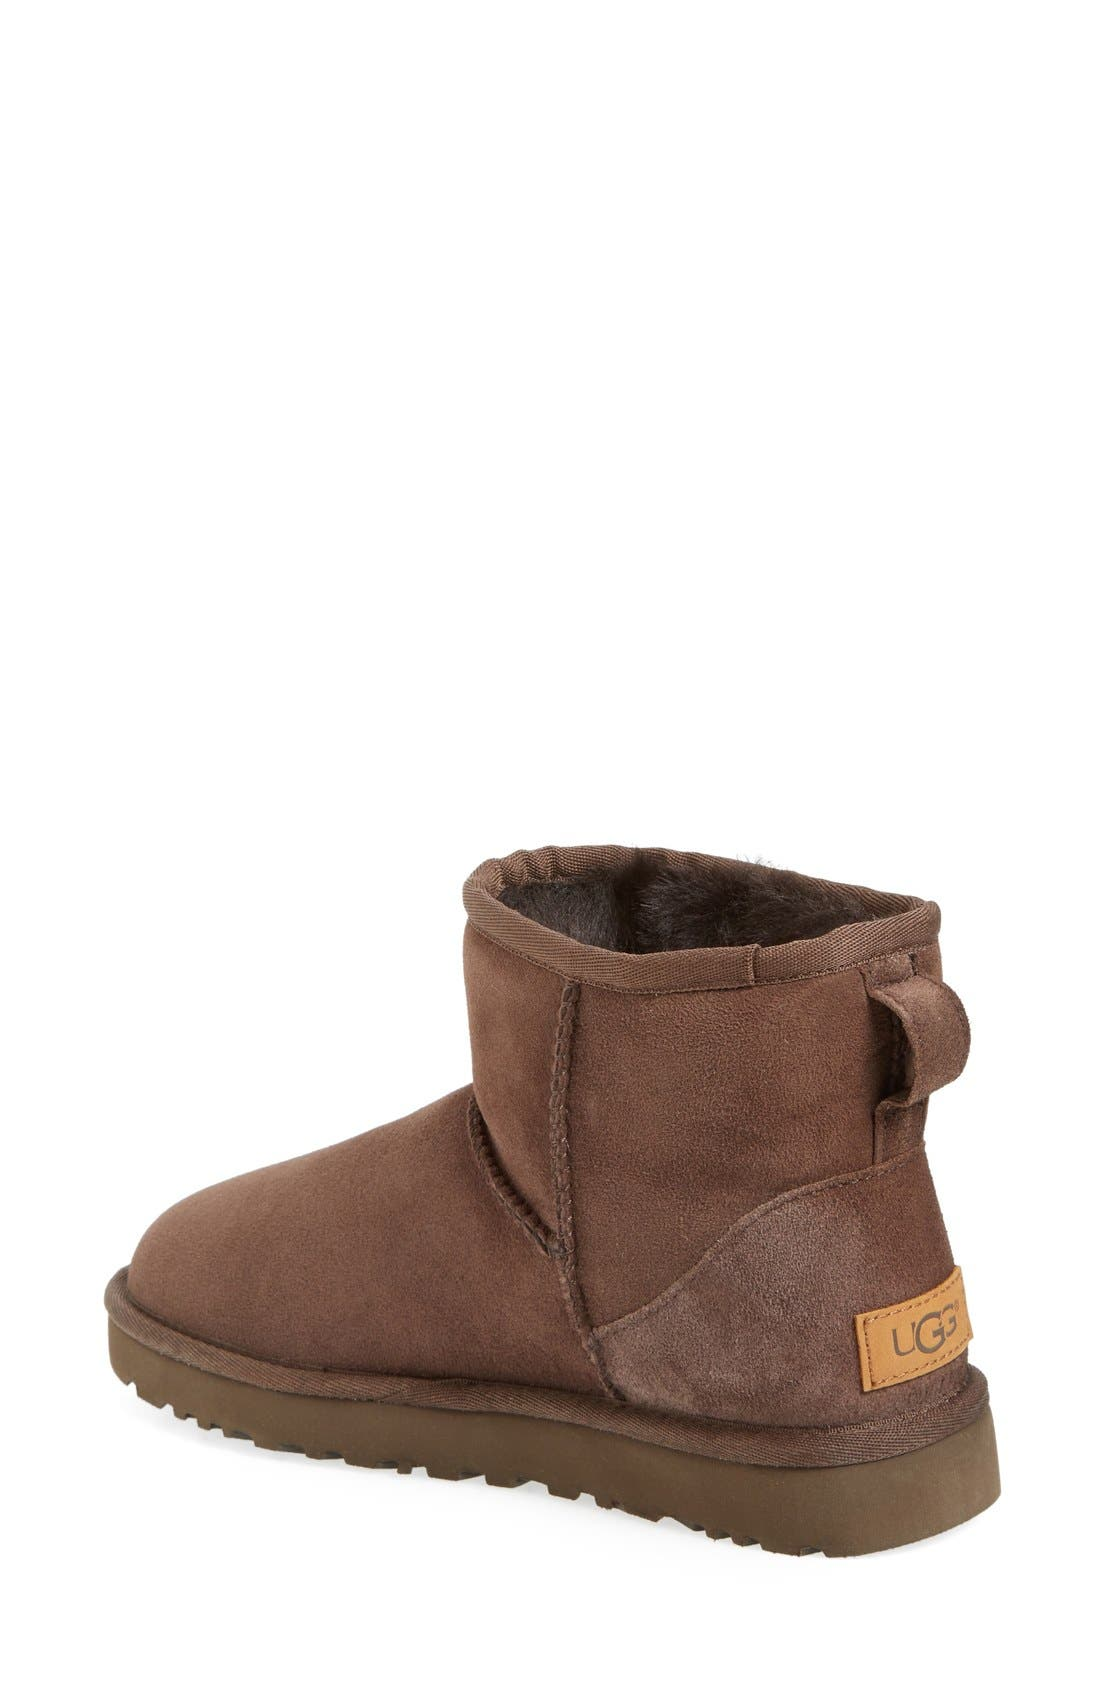 Alternate Image 2  - UGG® 'Classic Mini II' Genuine Shearling Lined Boot (Women)